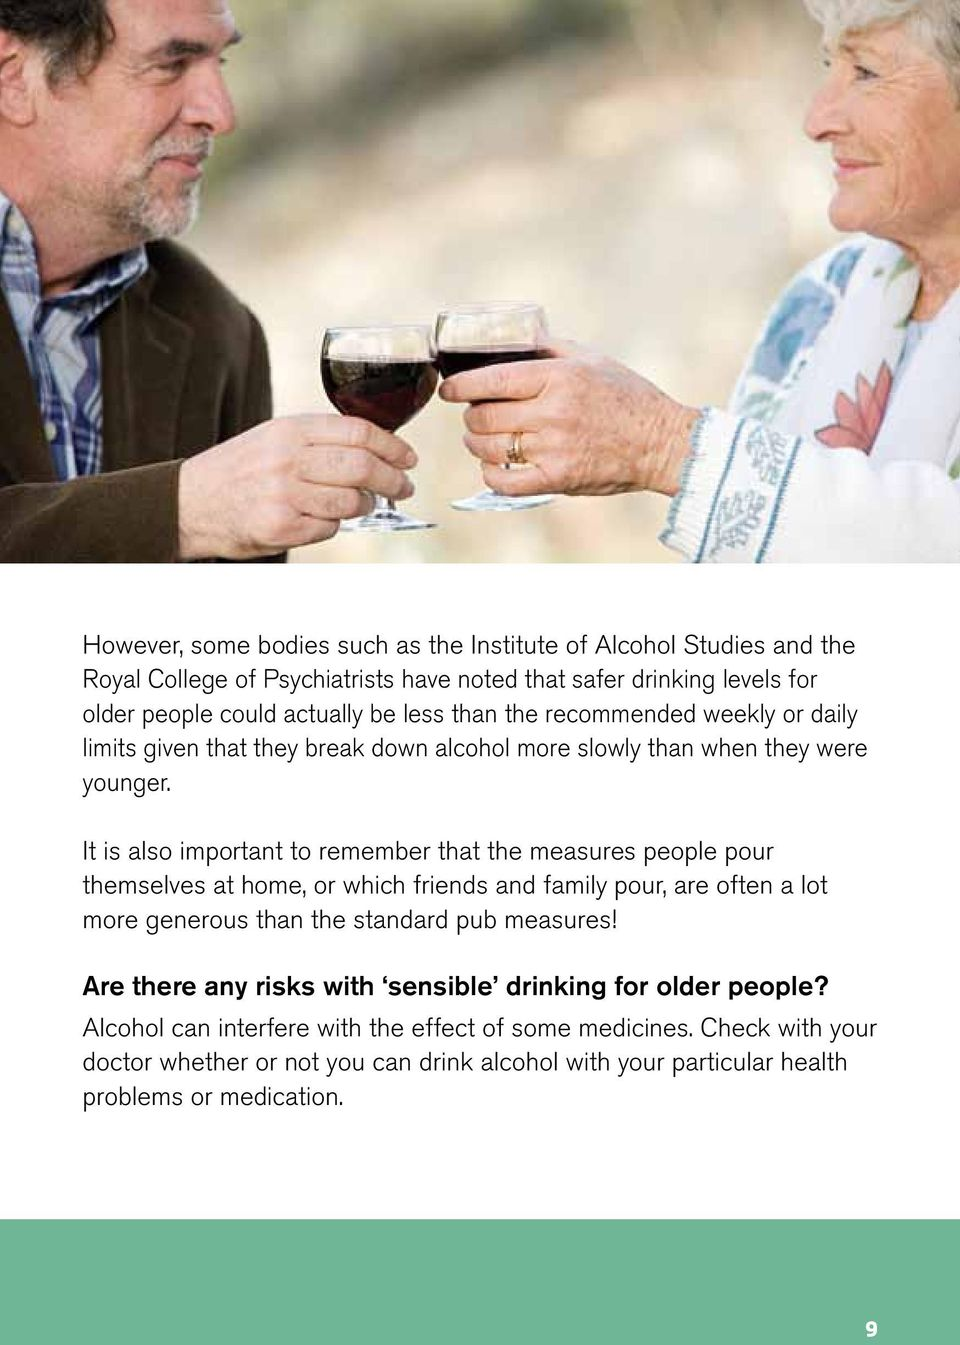 It is also important to remember that the measures people pour themselves at home, or which friends and family pour, are often a lot more generous than the standard pub measures!